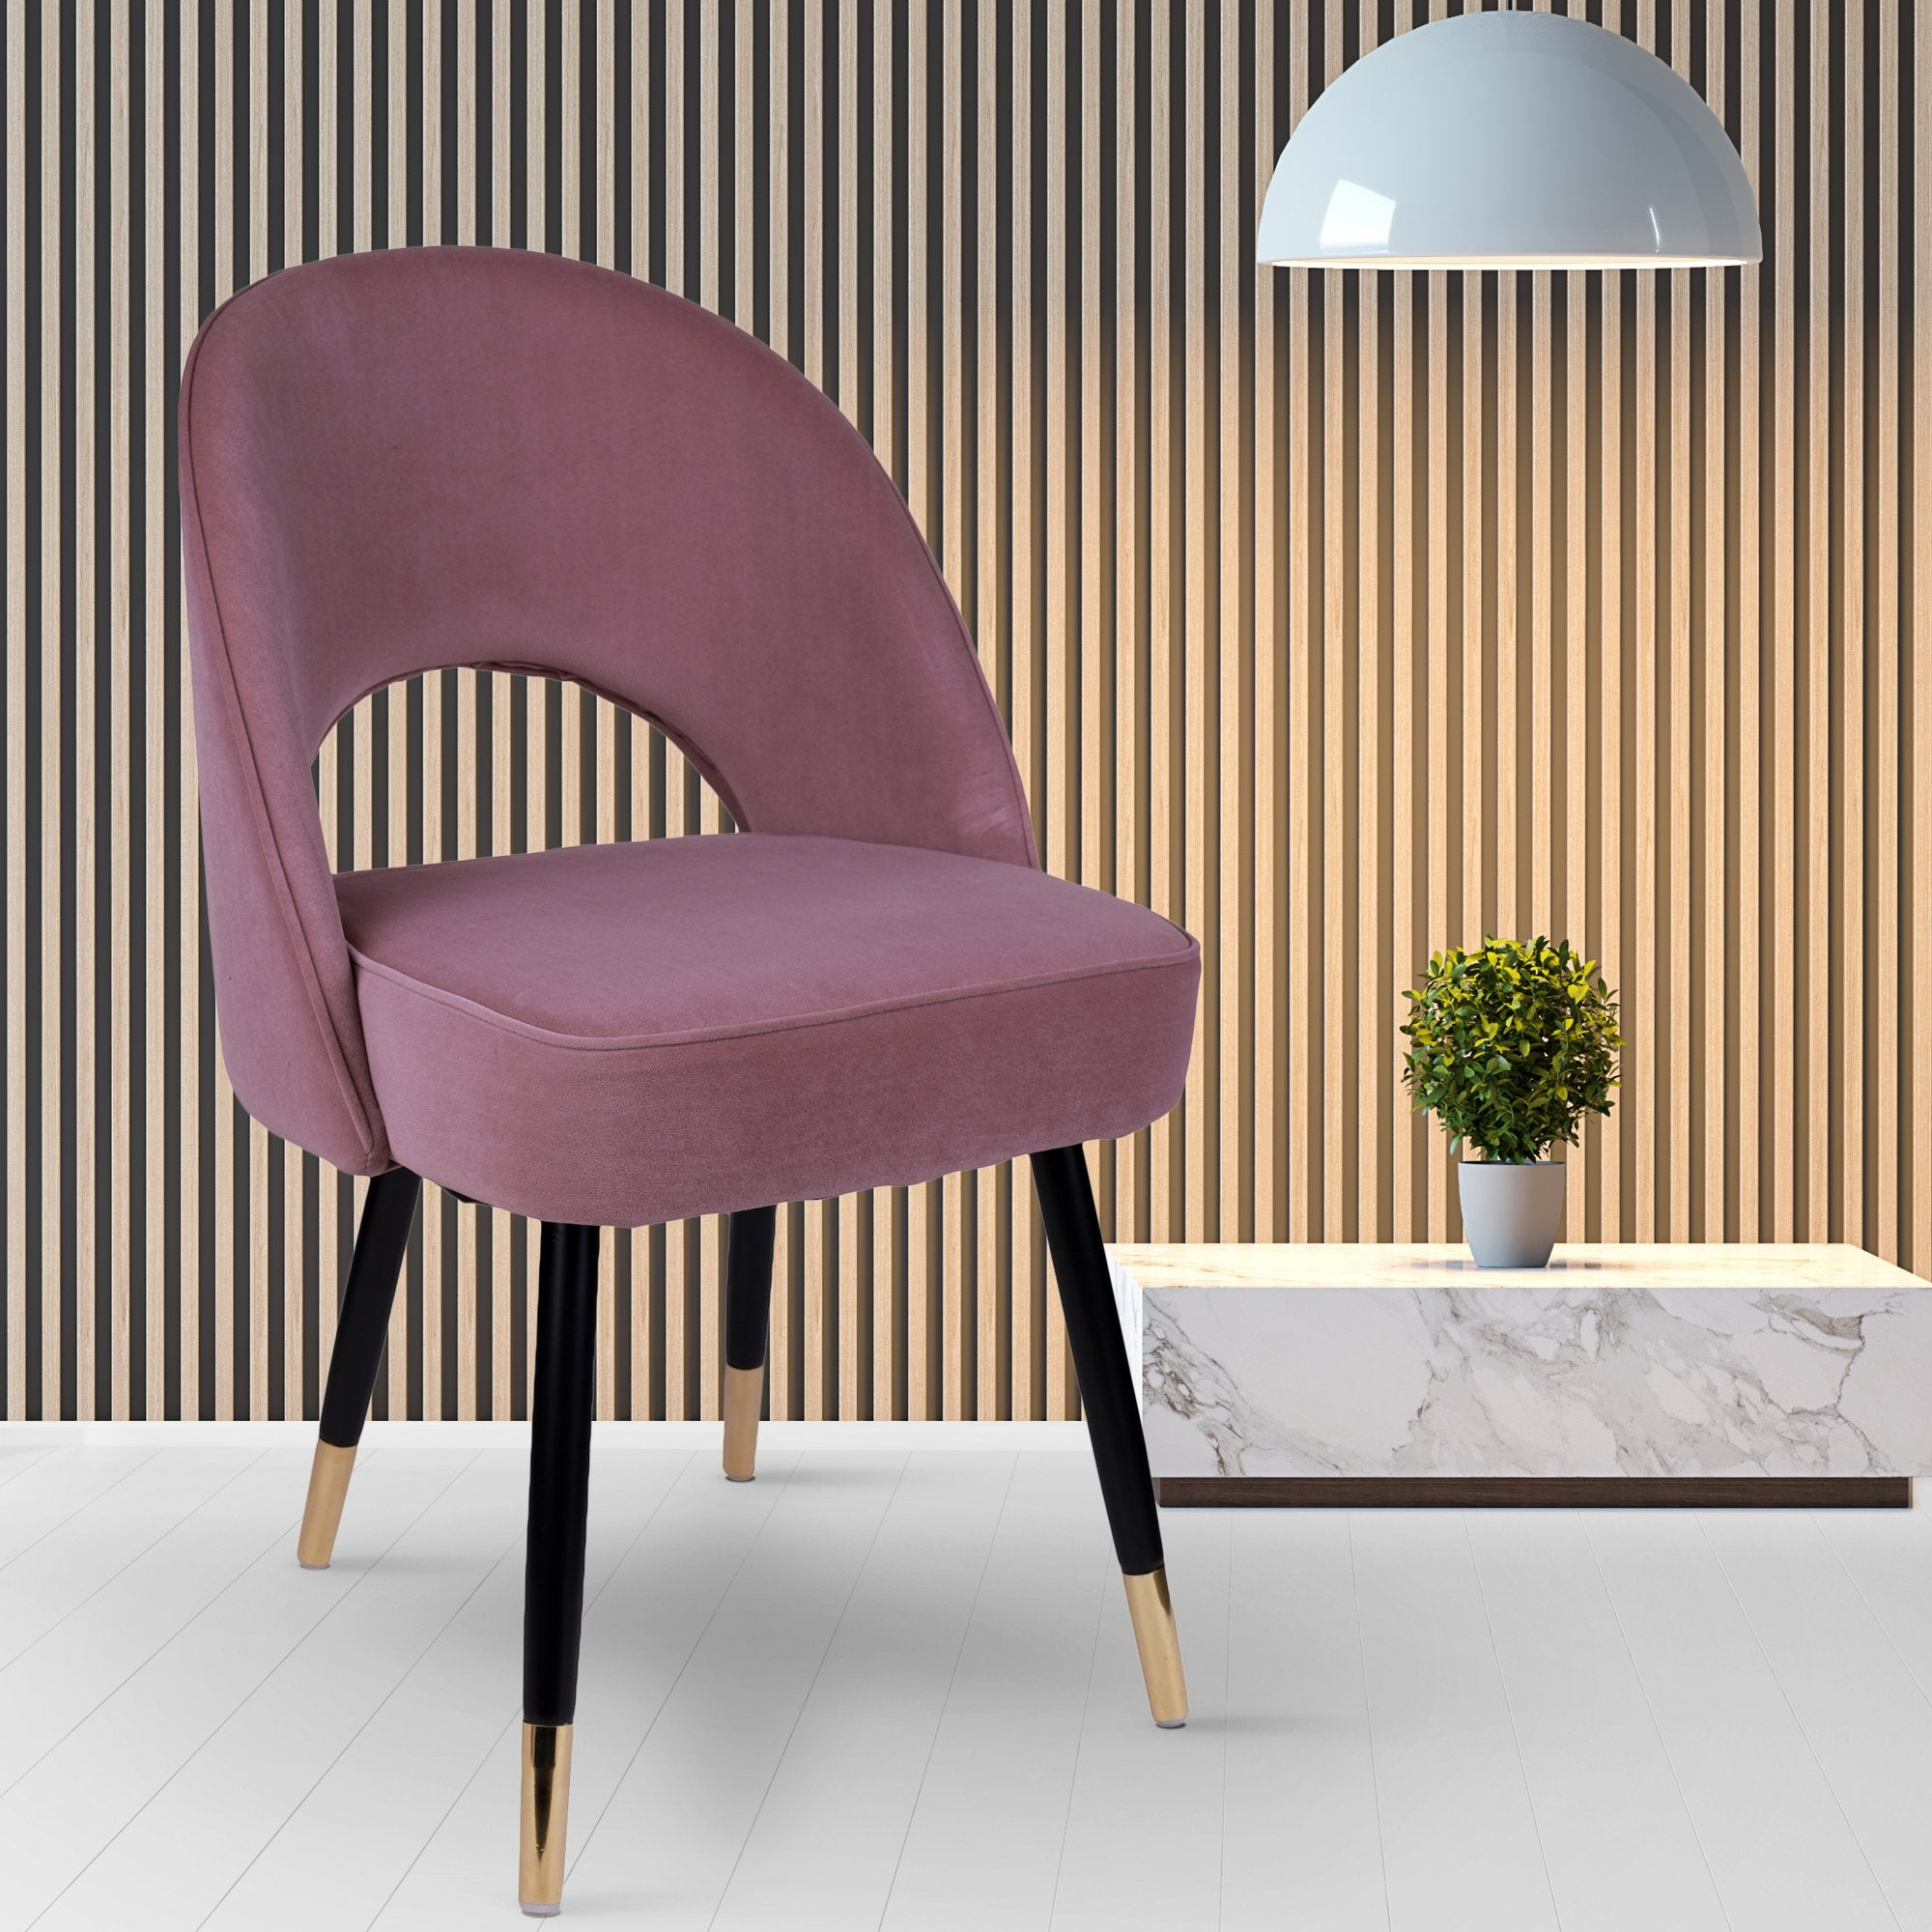 Chromed Gold Chair in Deep Ruby Color